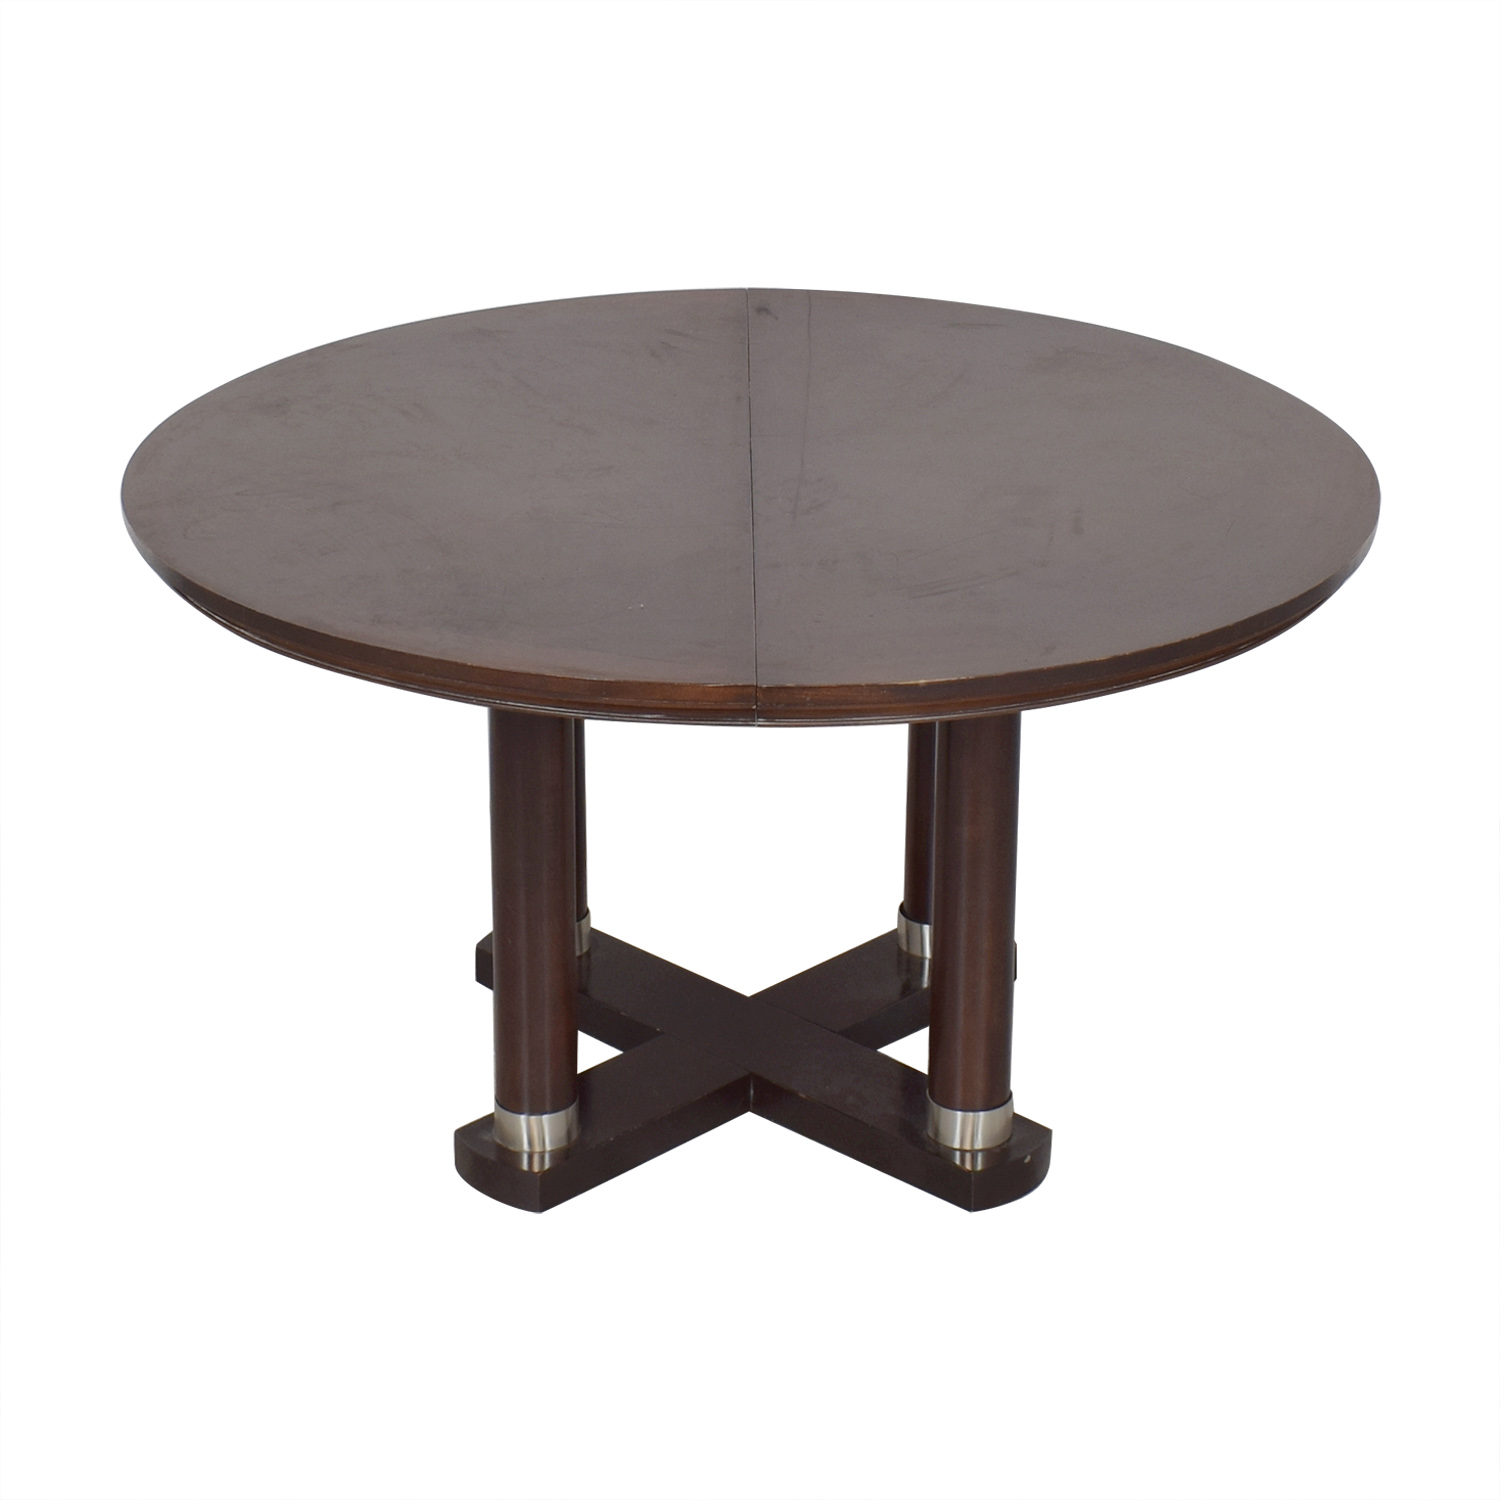 Lexington Furniture Round Dining Table sale